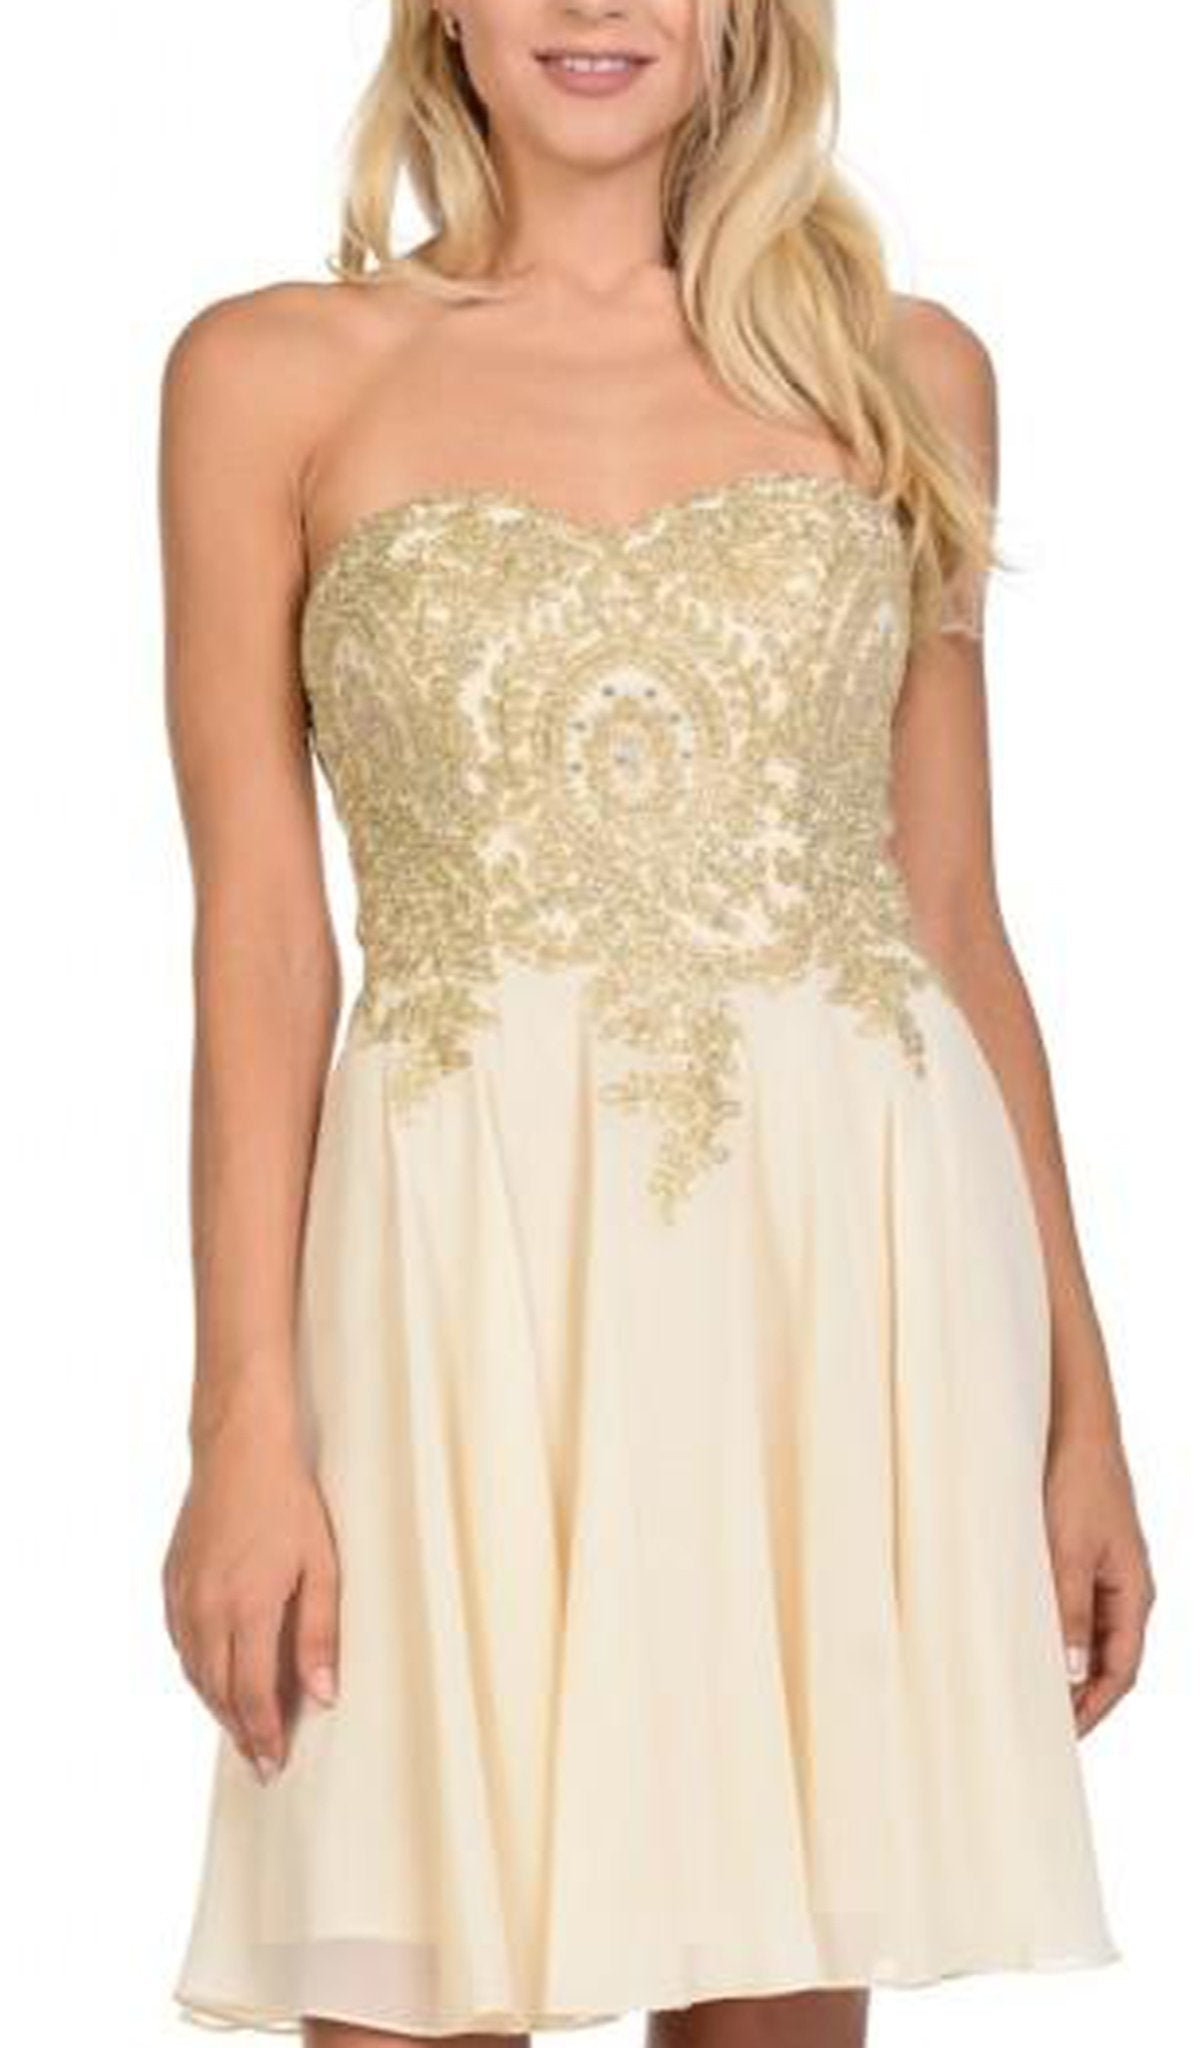 Lenovia - 8110SC Gold Applique Strapless Fit and Flare Cocktail Dress